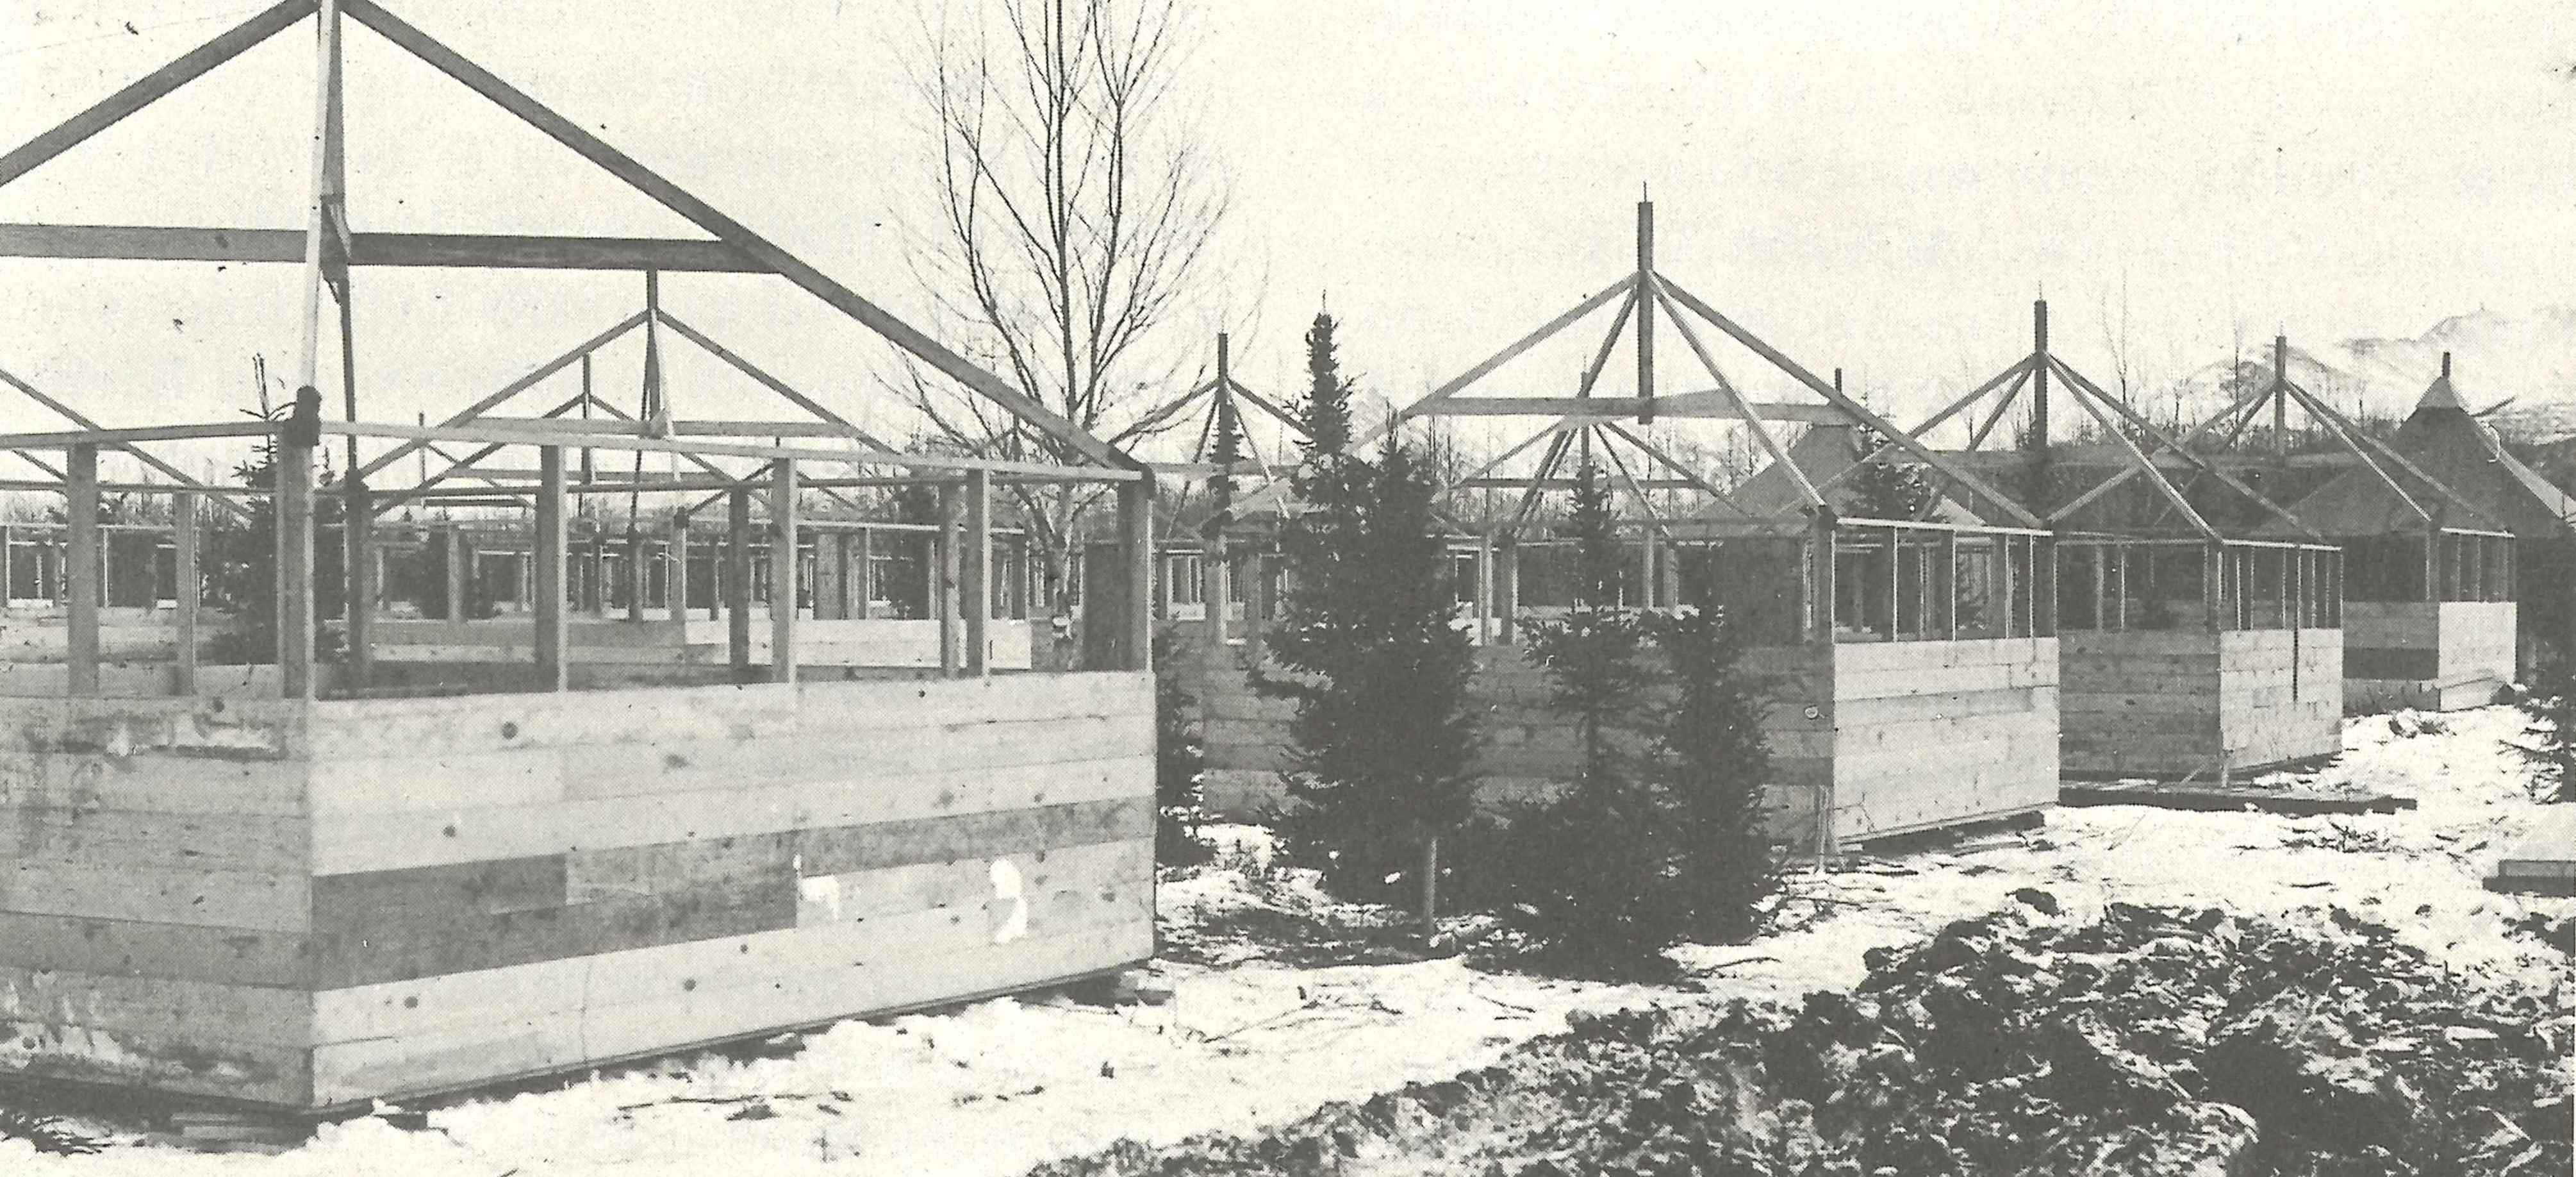 Camp construction at Fort Richardson, 1942 (Courtesy of Dr. Morgan Blanchard, Northern Land Use Research Alaska)